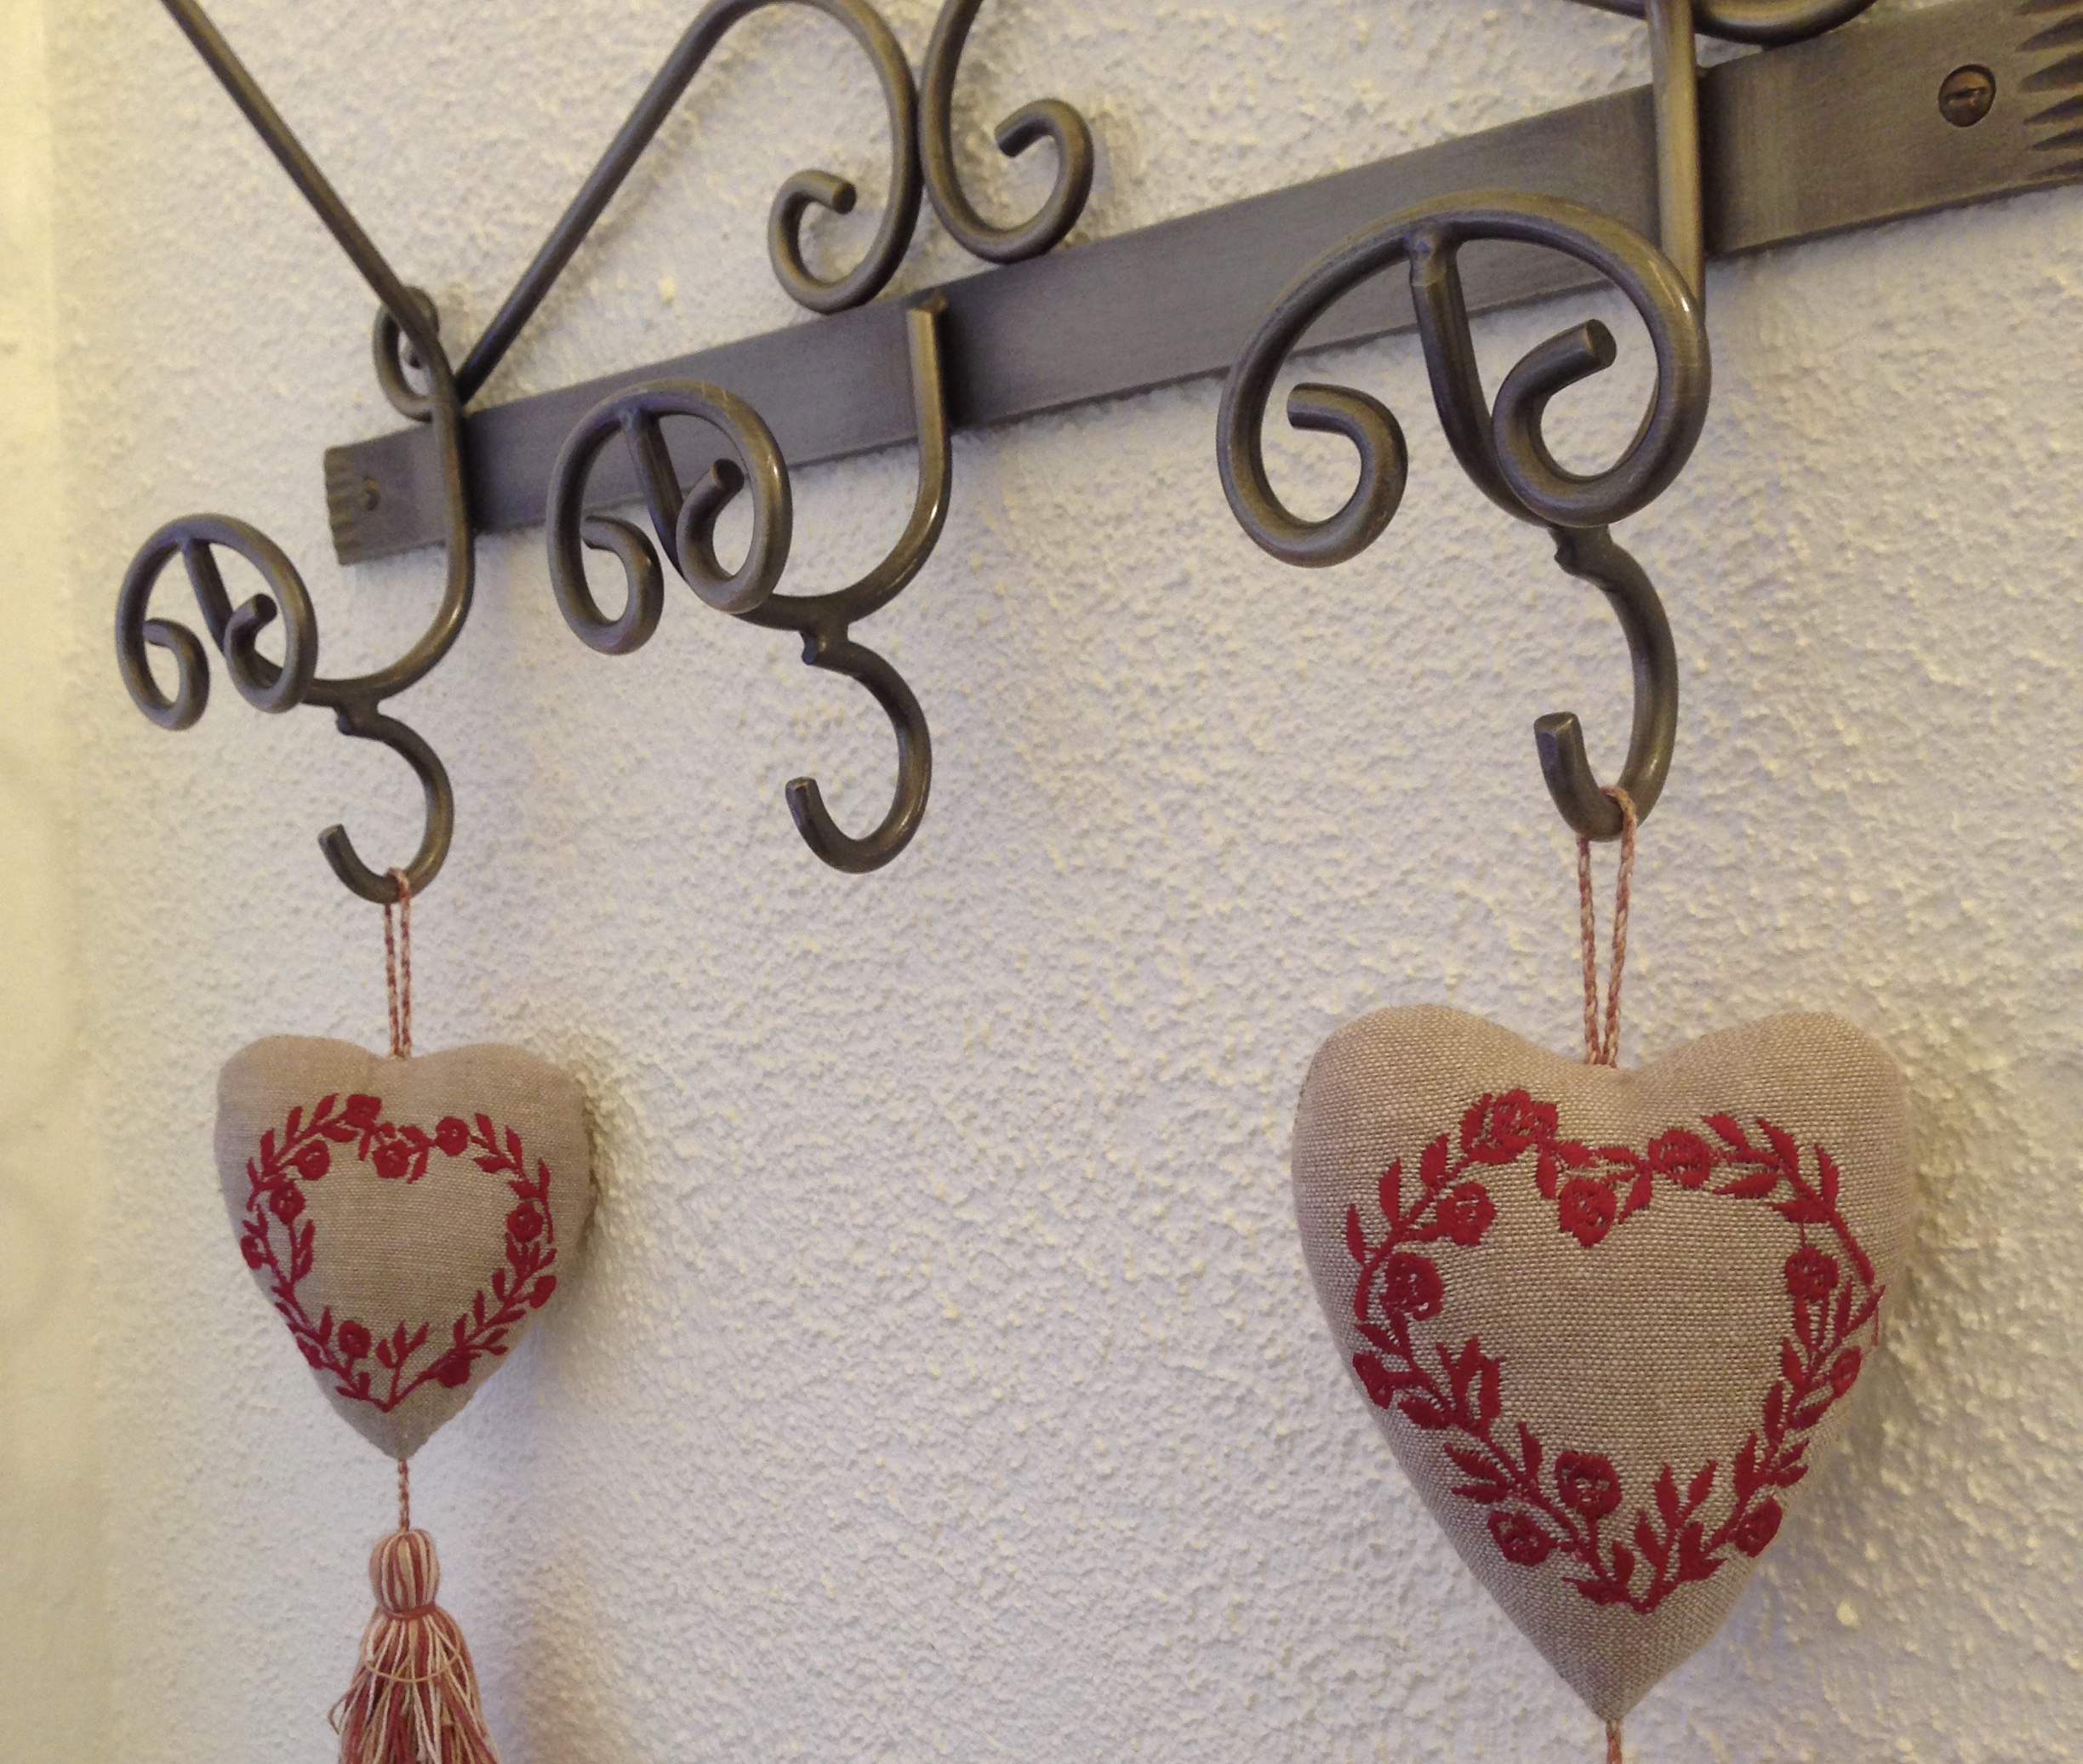 Hearts hanging